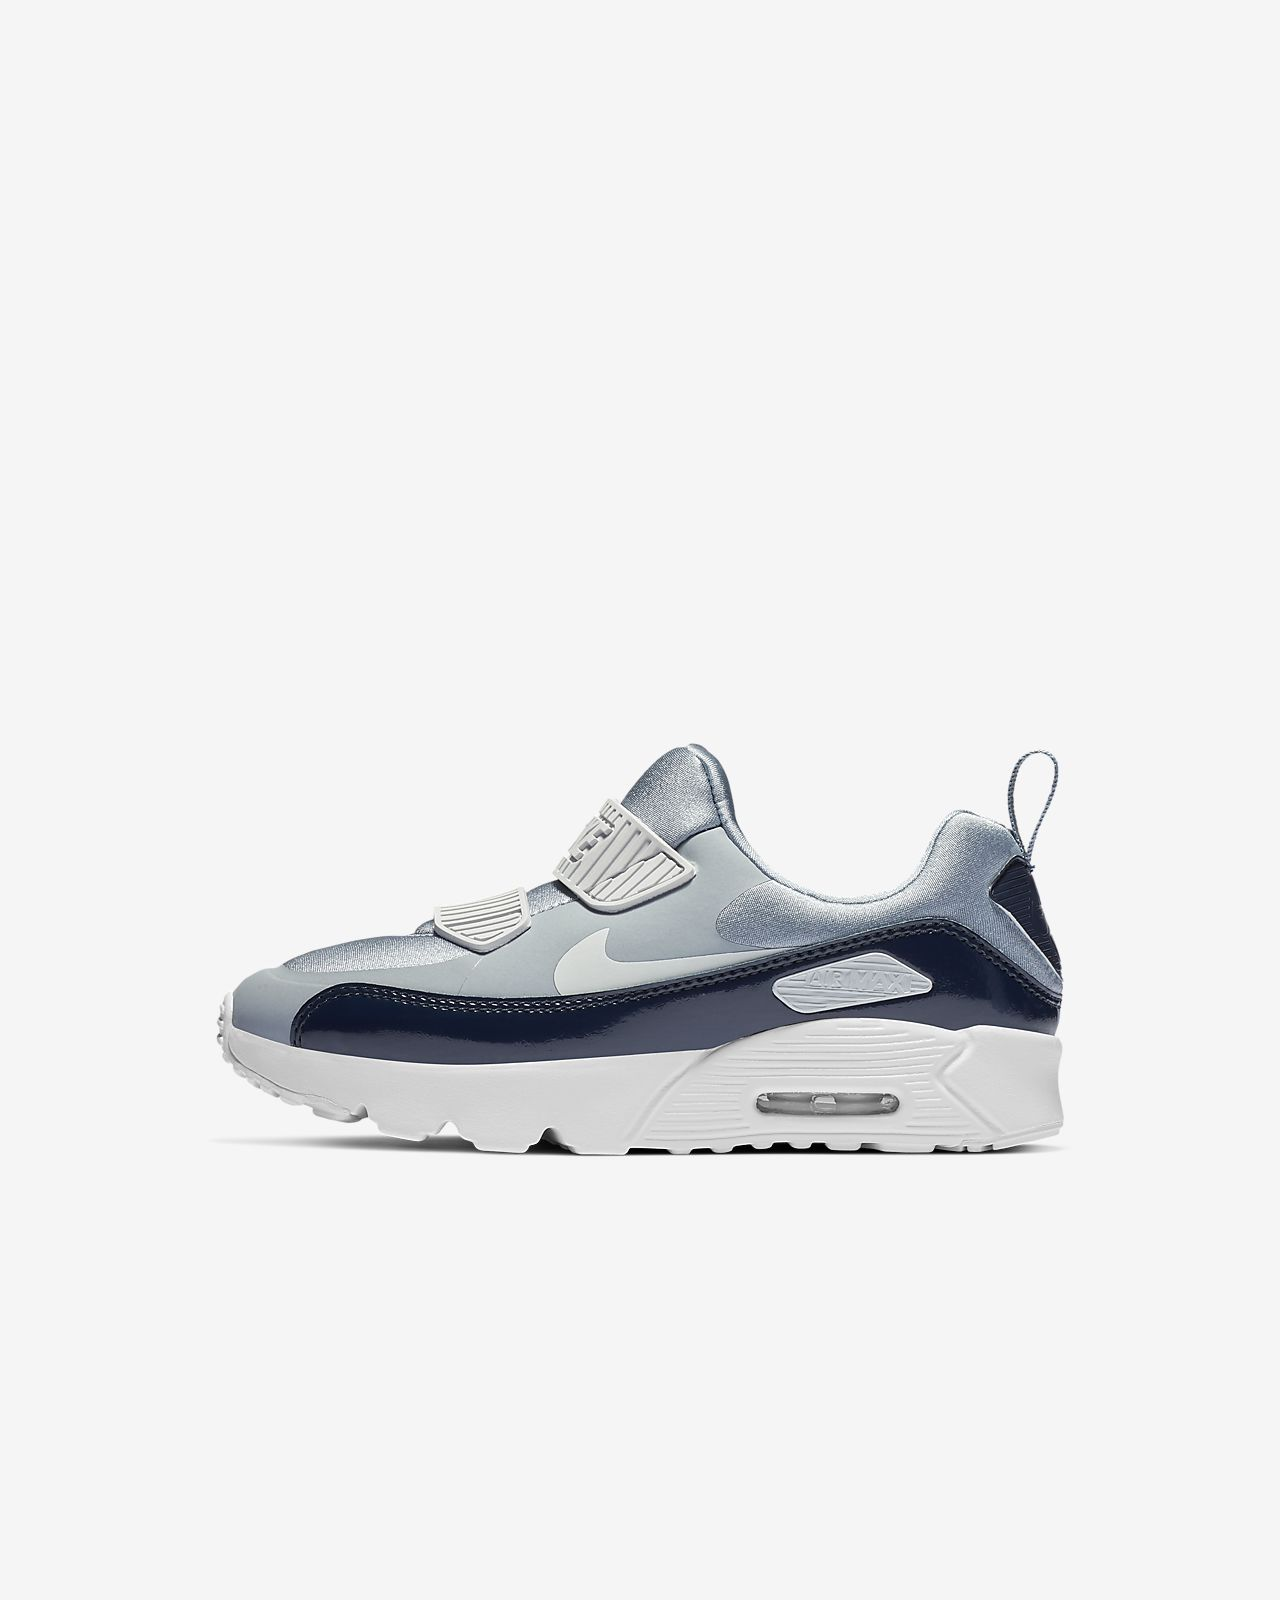 Nike Air Max Tiny 90 (PS) 幼童运动童鞋